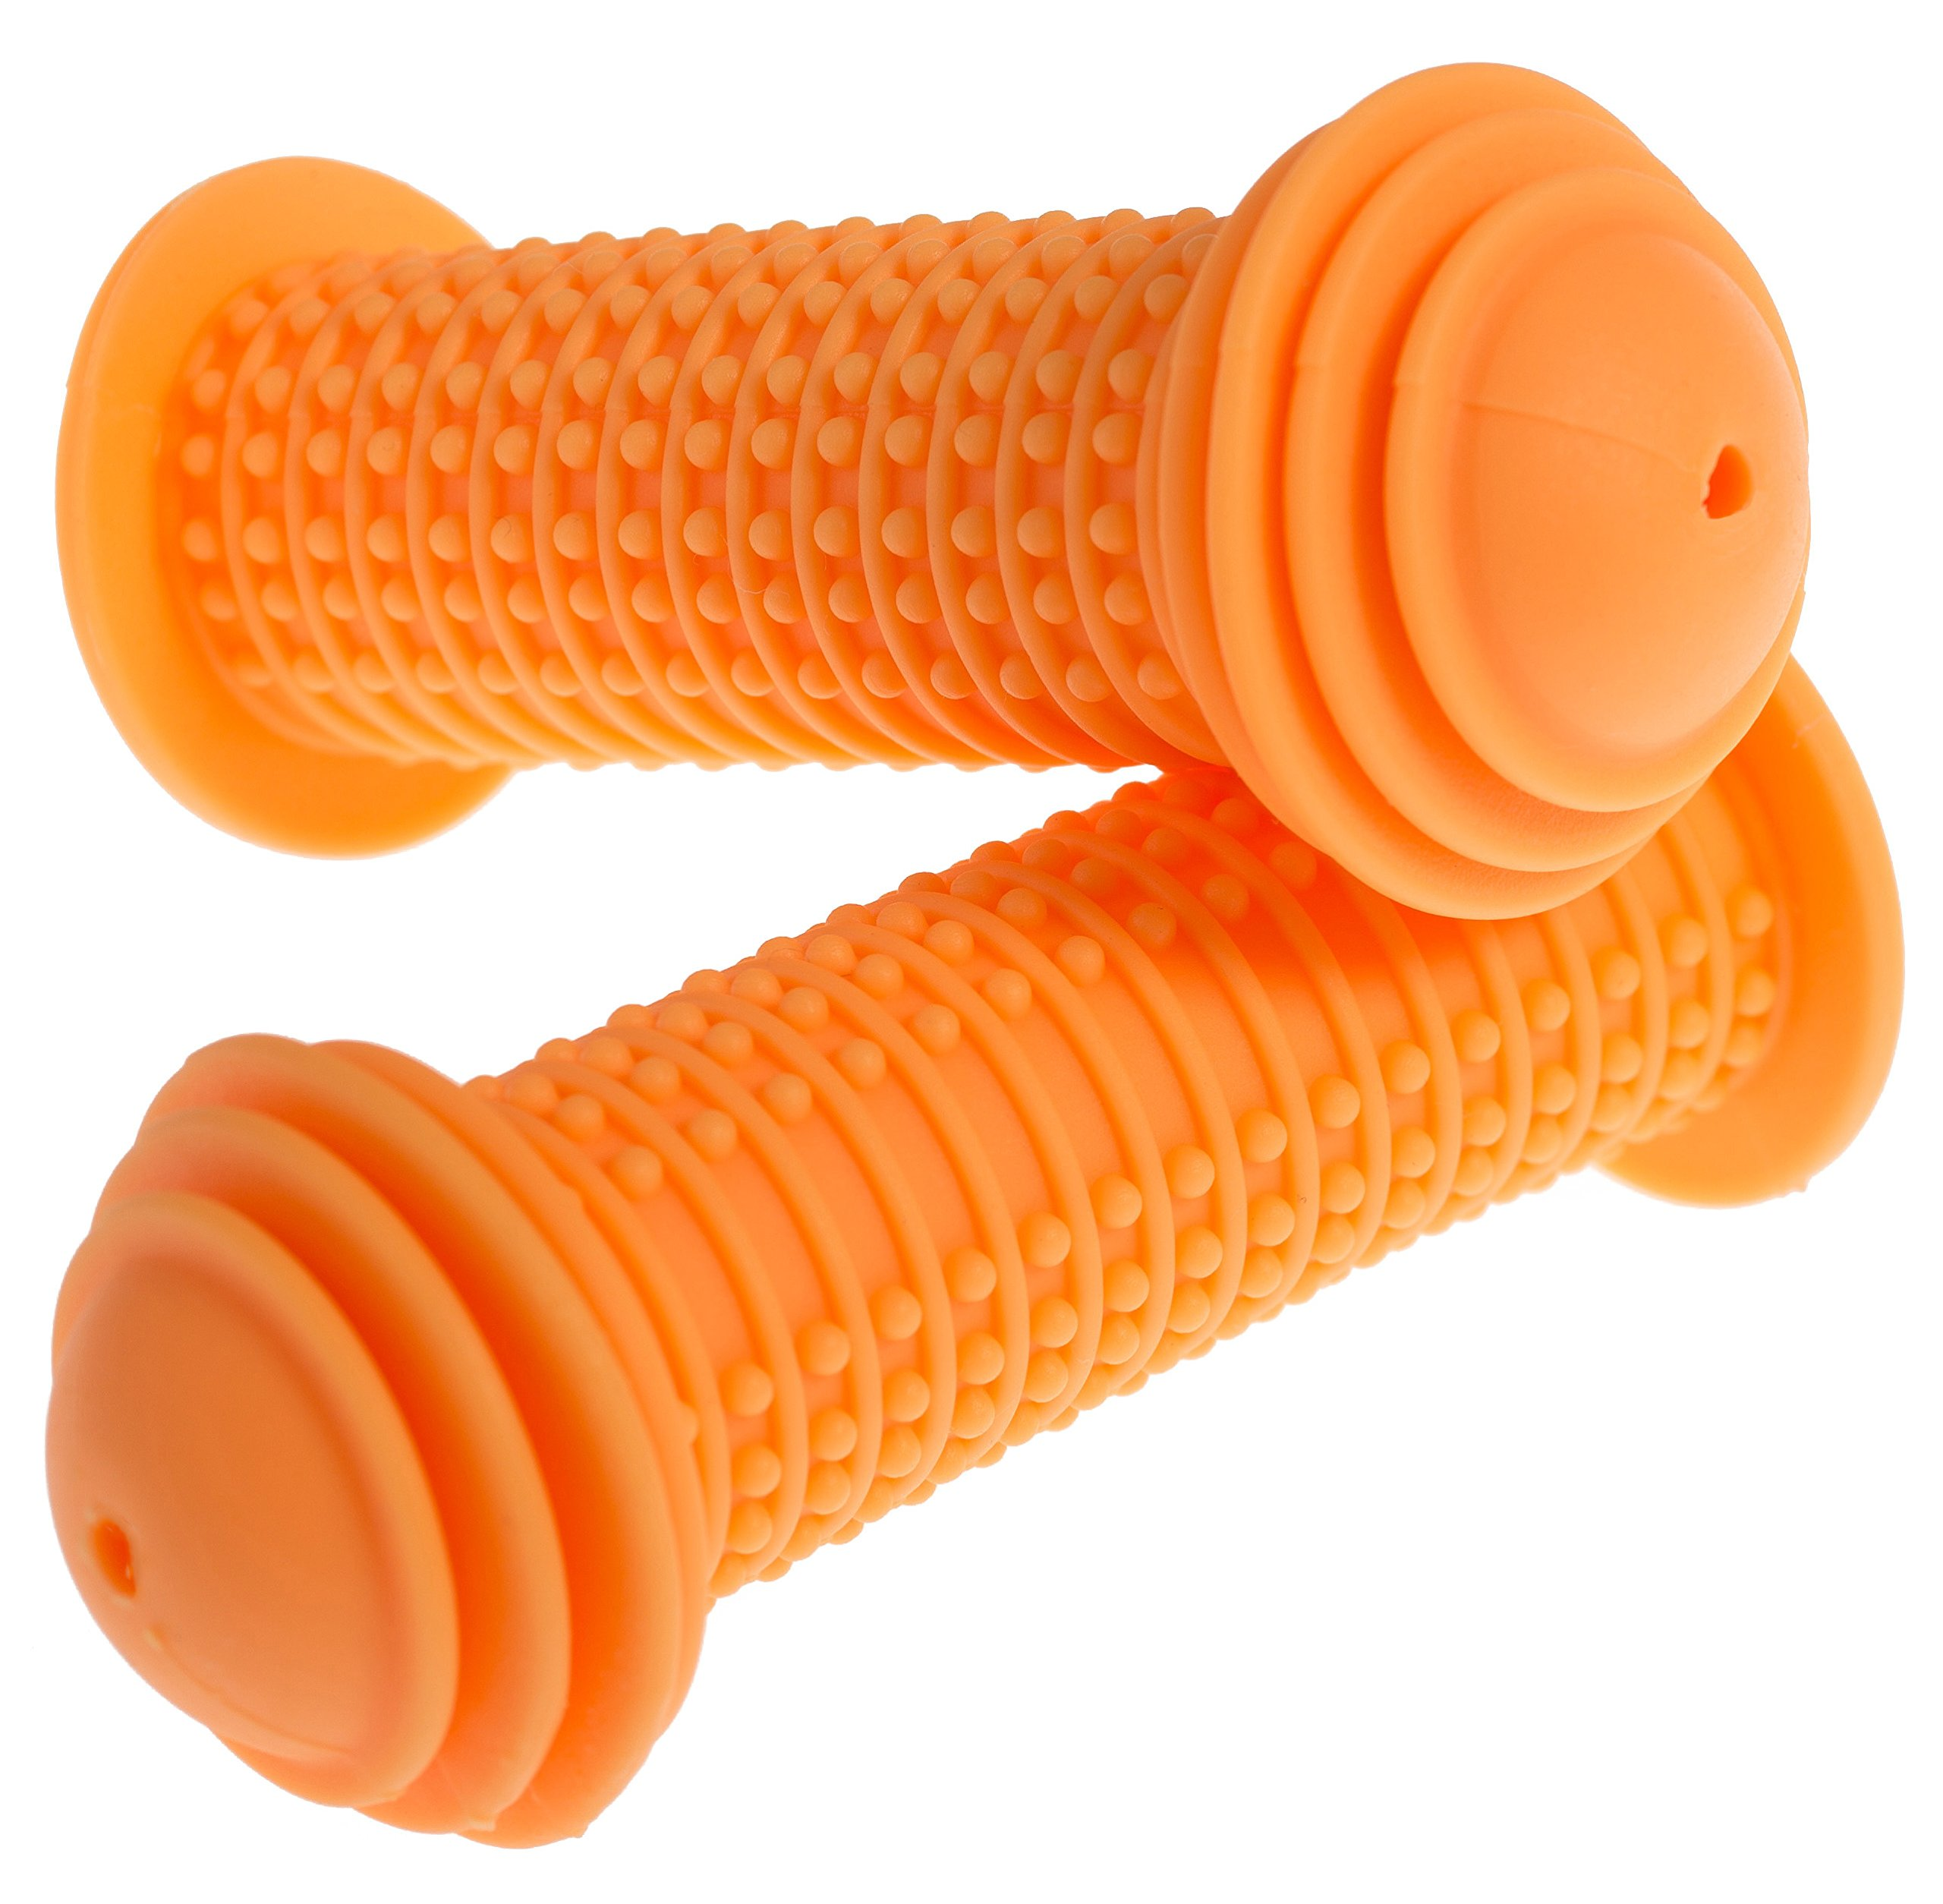 PROMETHEUS Kids Bike Grips 1 Pair in Orange   with SAFETY BAR END PADS   also for balance bike and scooter   22 mm Handlebar Grips   Child Safety Grip with SAFETY IMPACT ENDS   Edition 2018